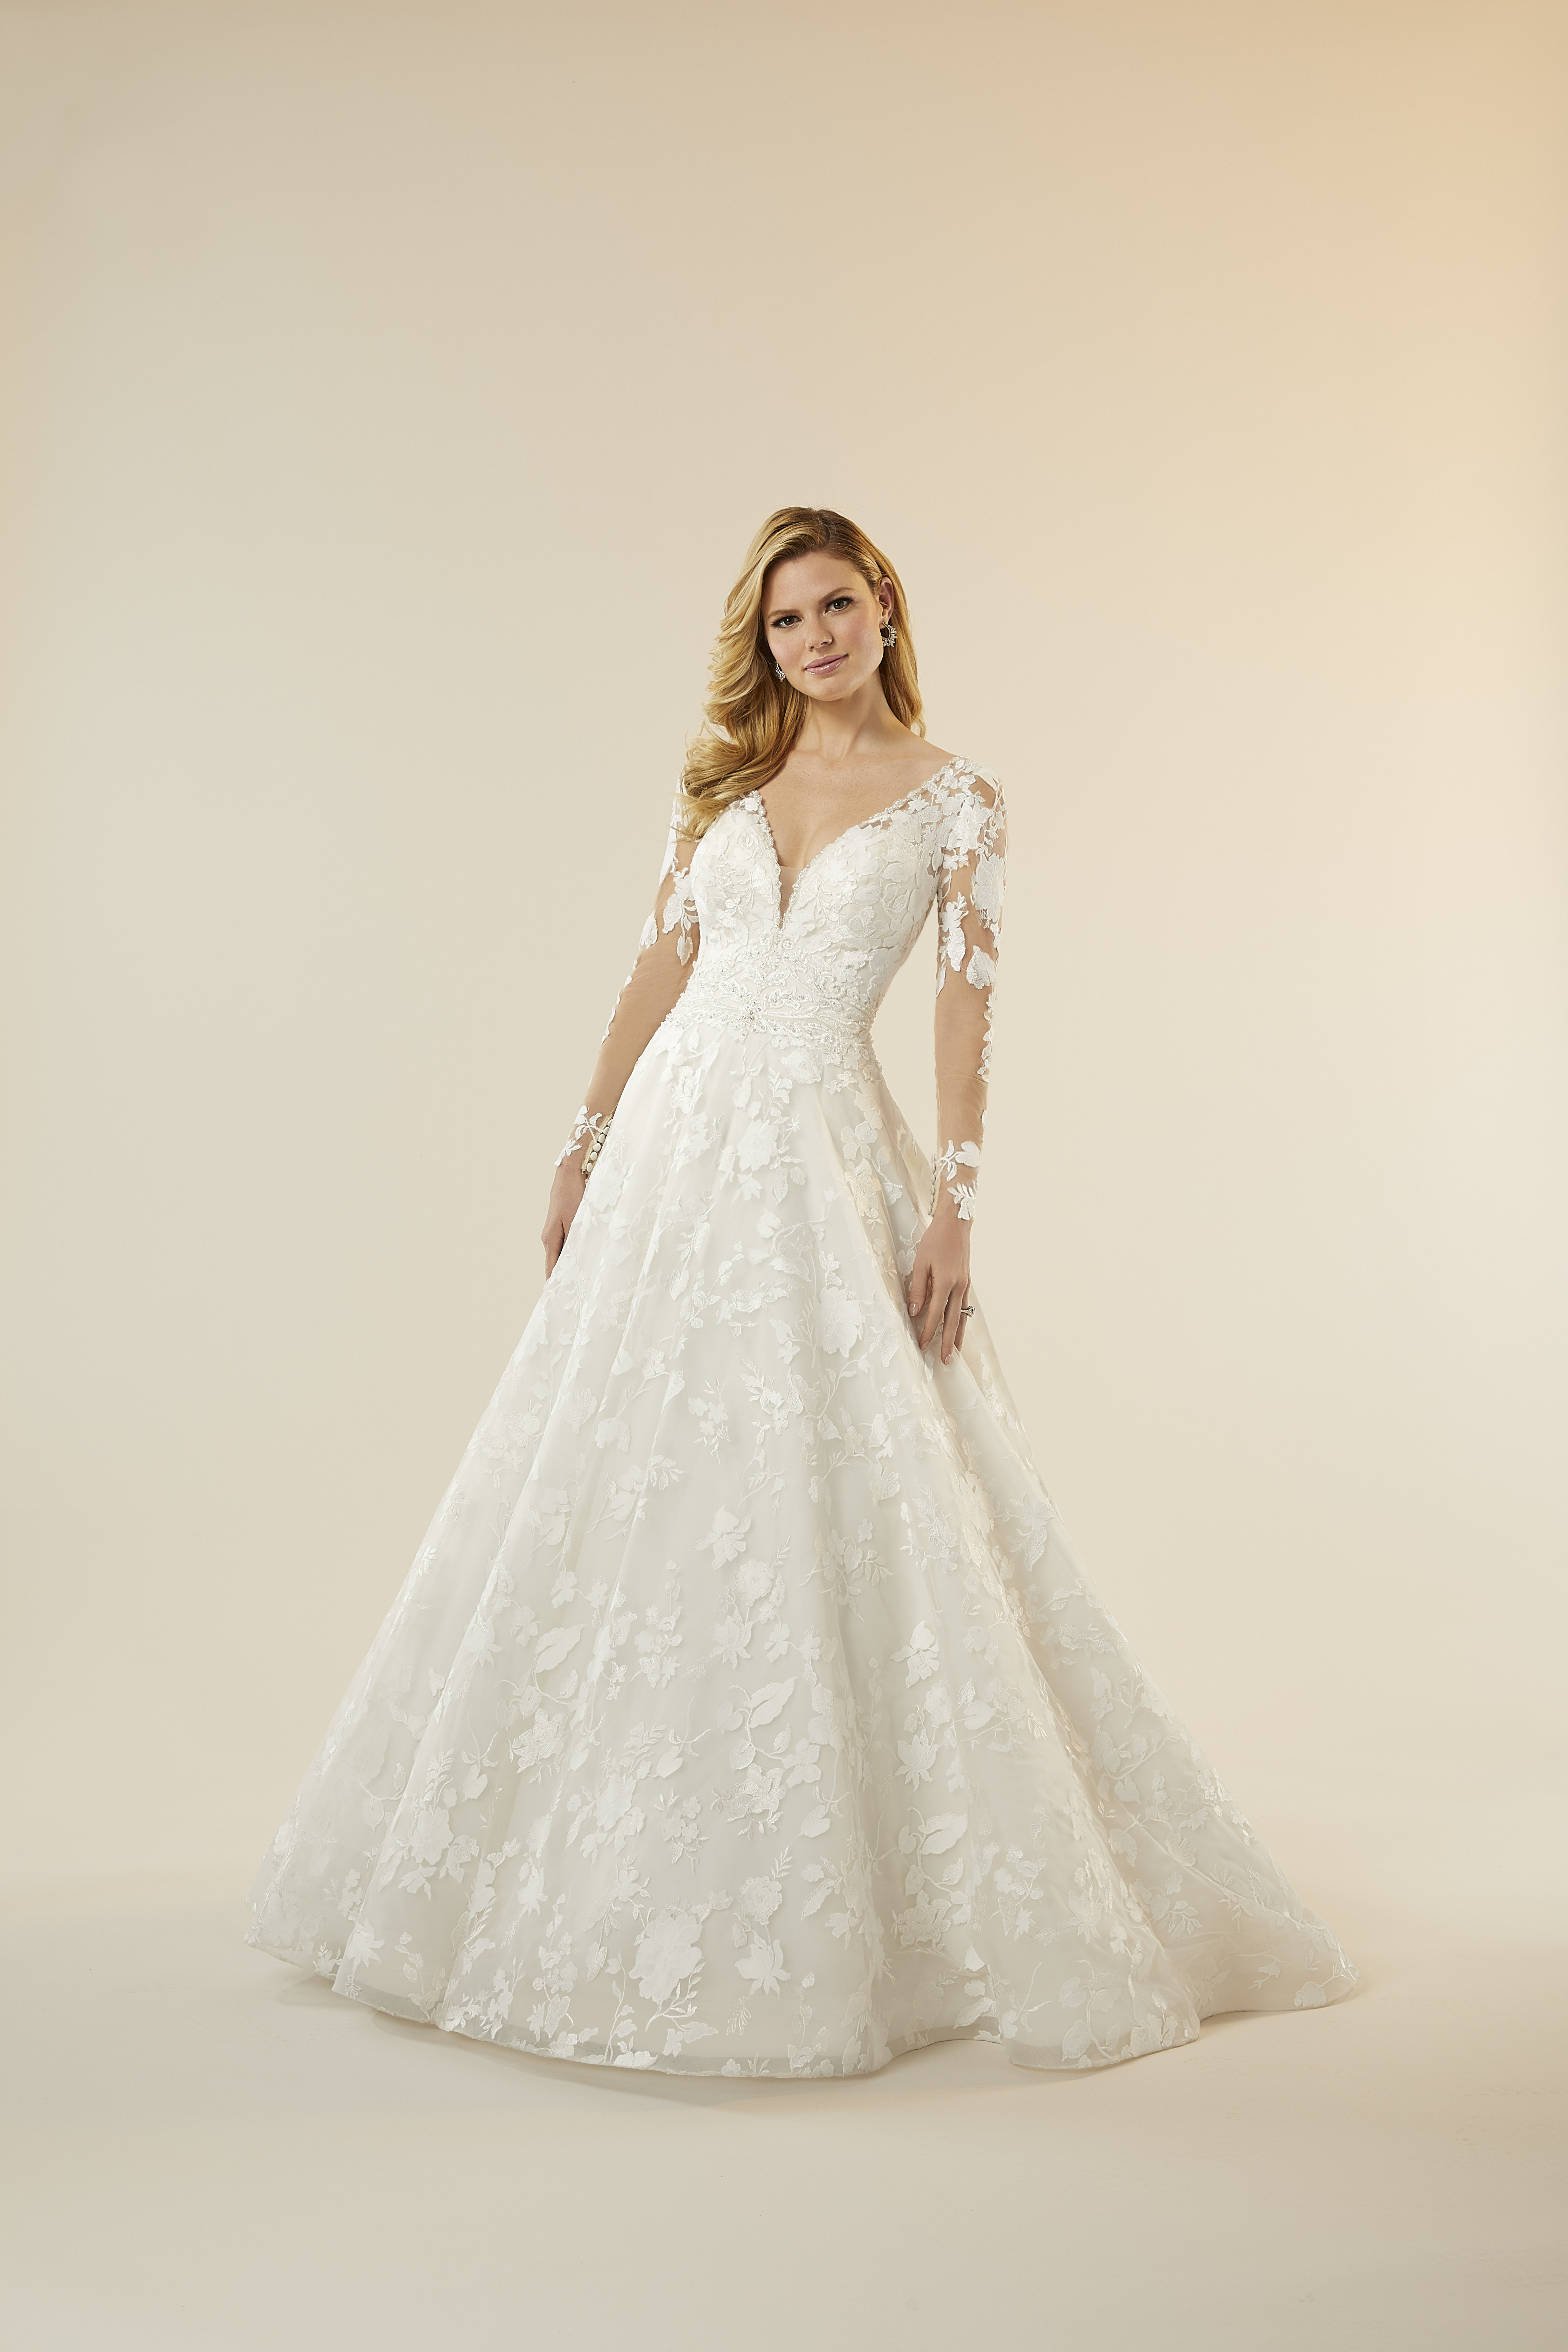 Madeline-Gardner-New-York-51705-wedding-dress-melody